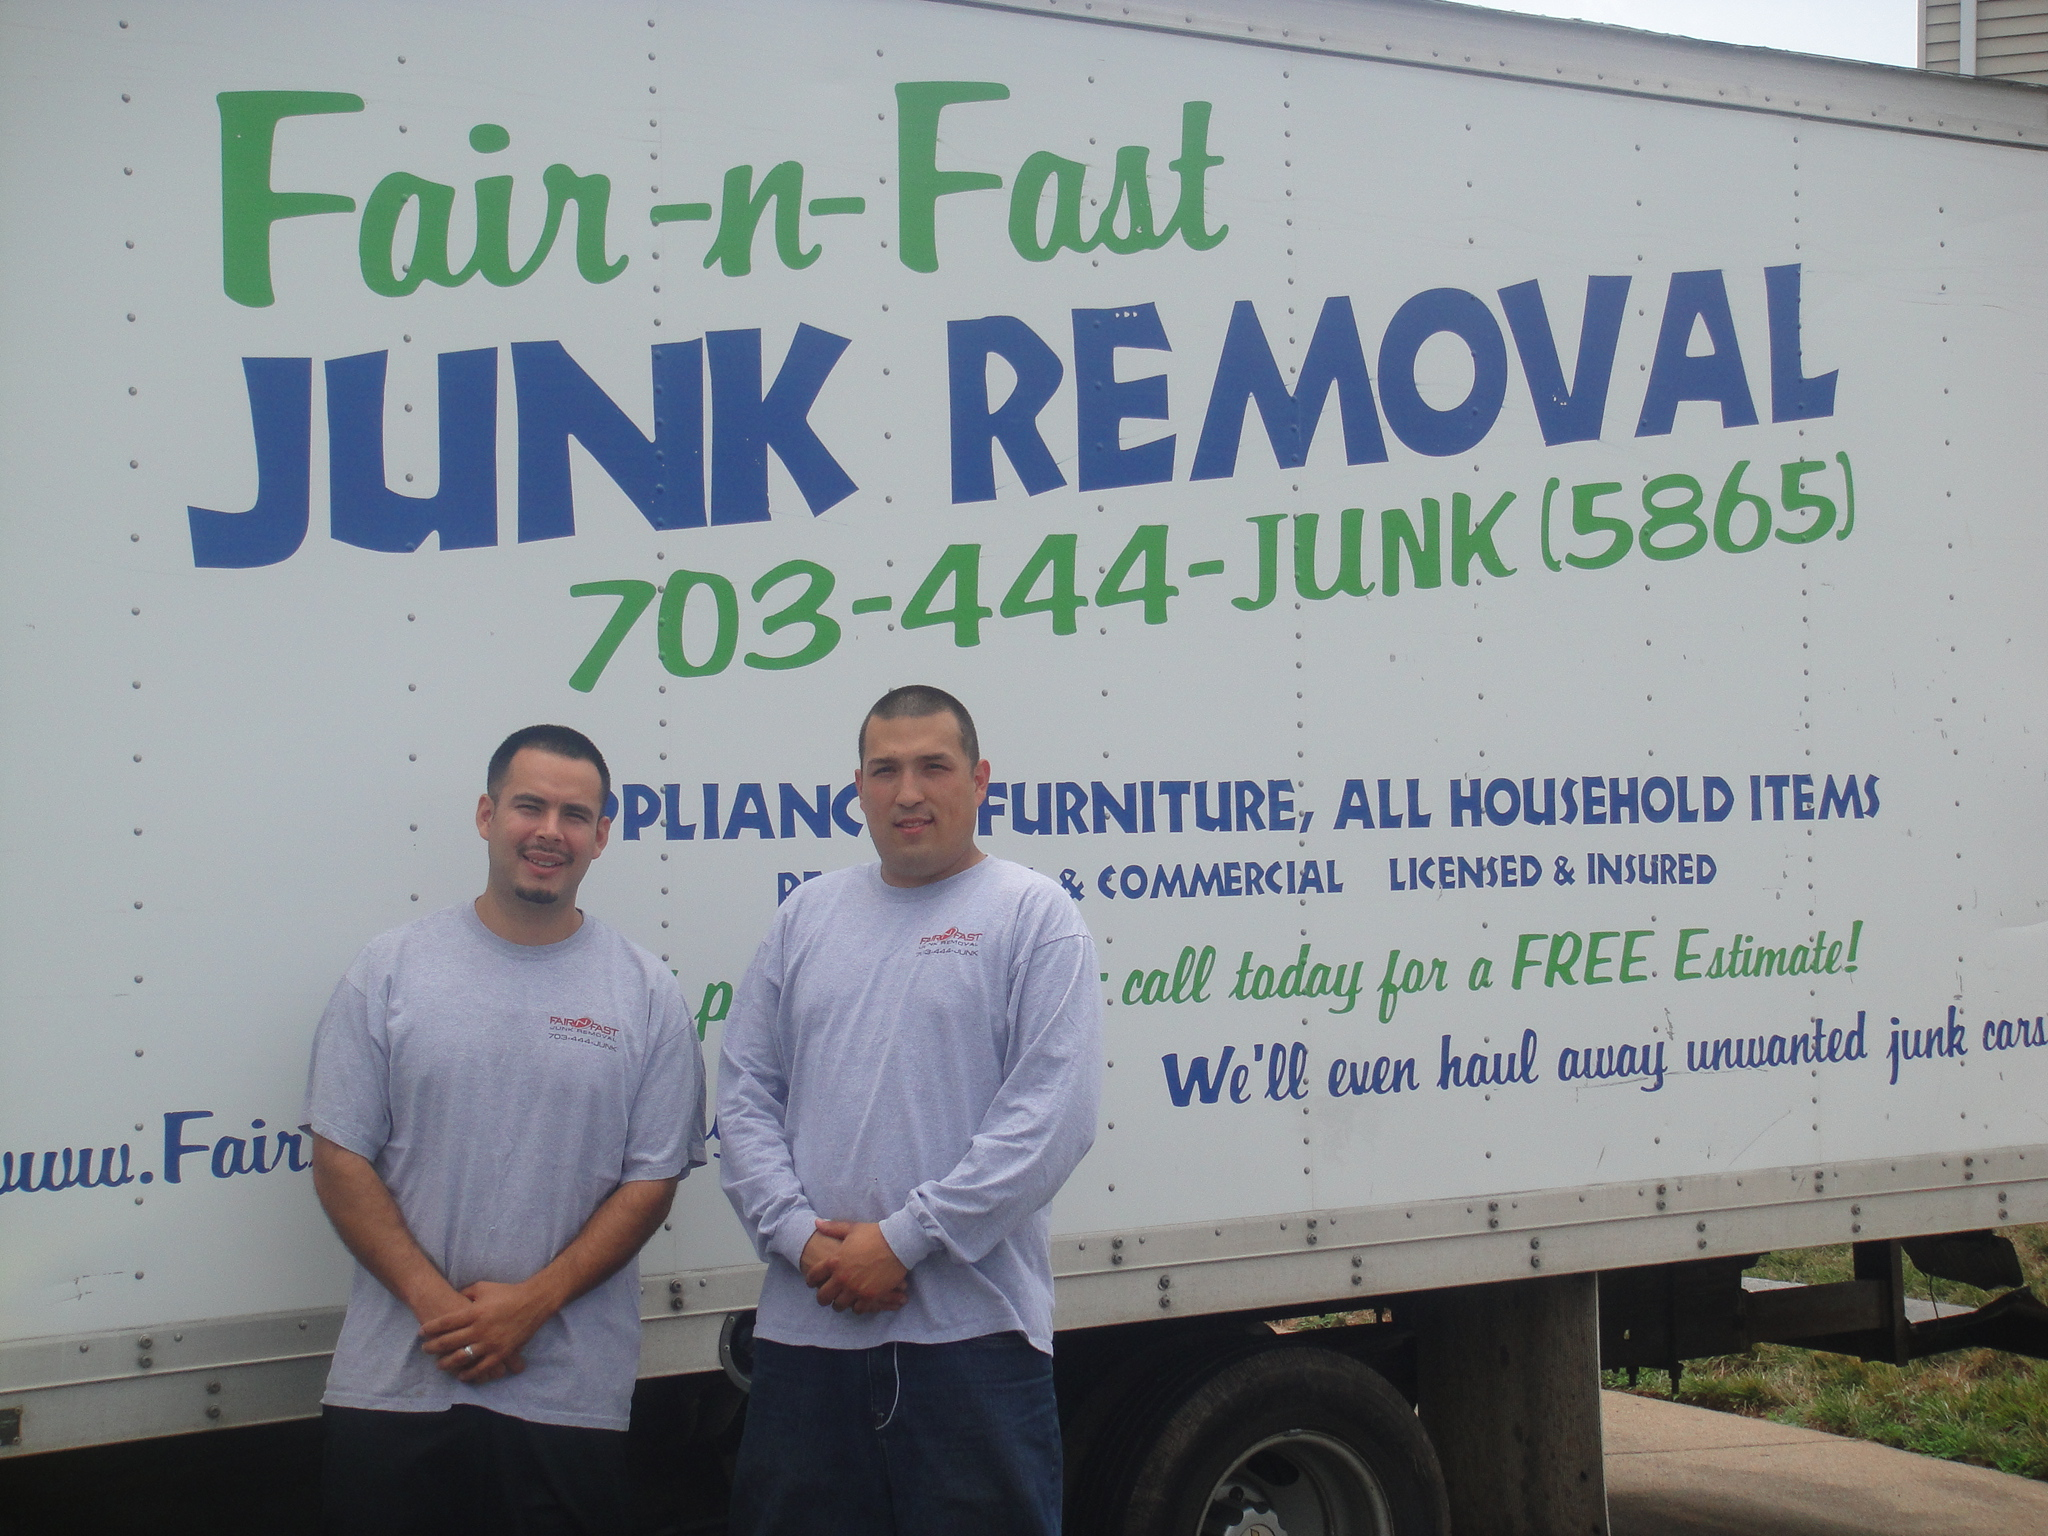 Fair N Fast Junk Removal Services Offered Junk Removal